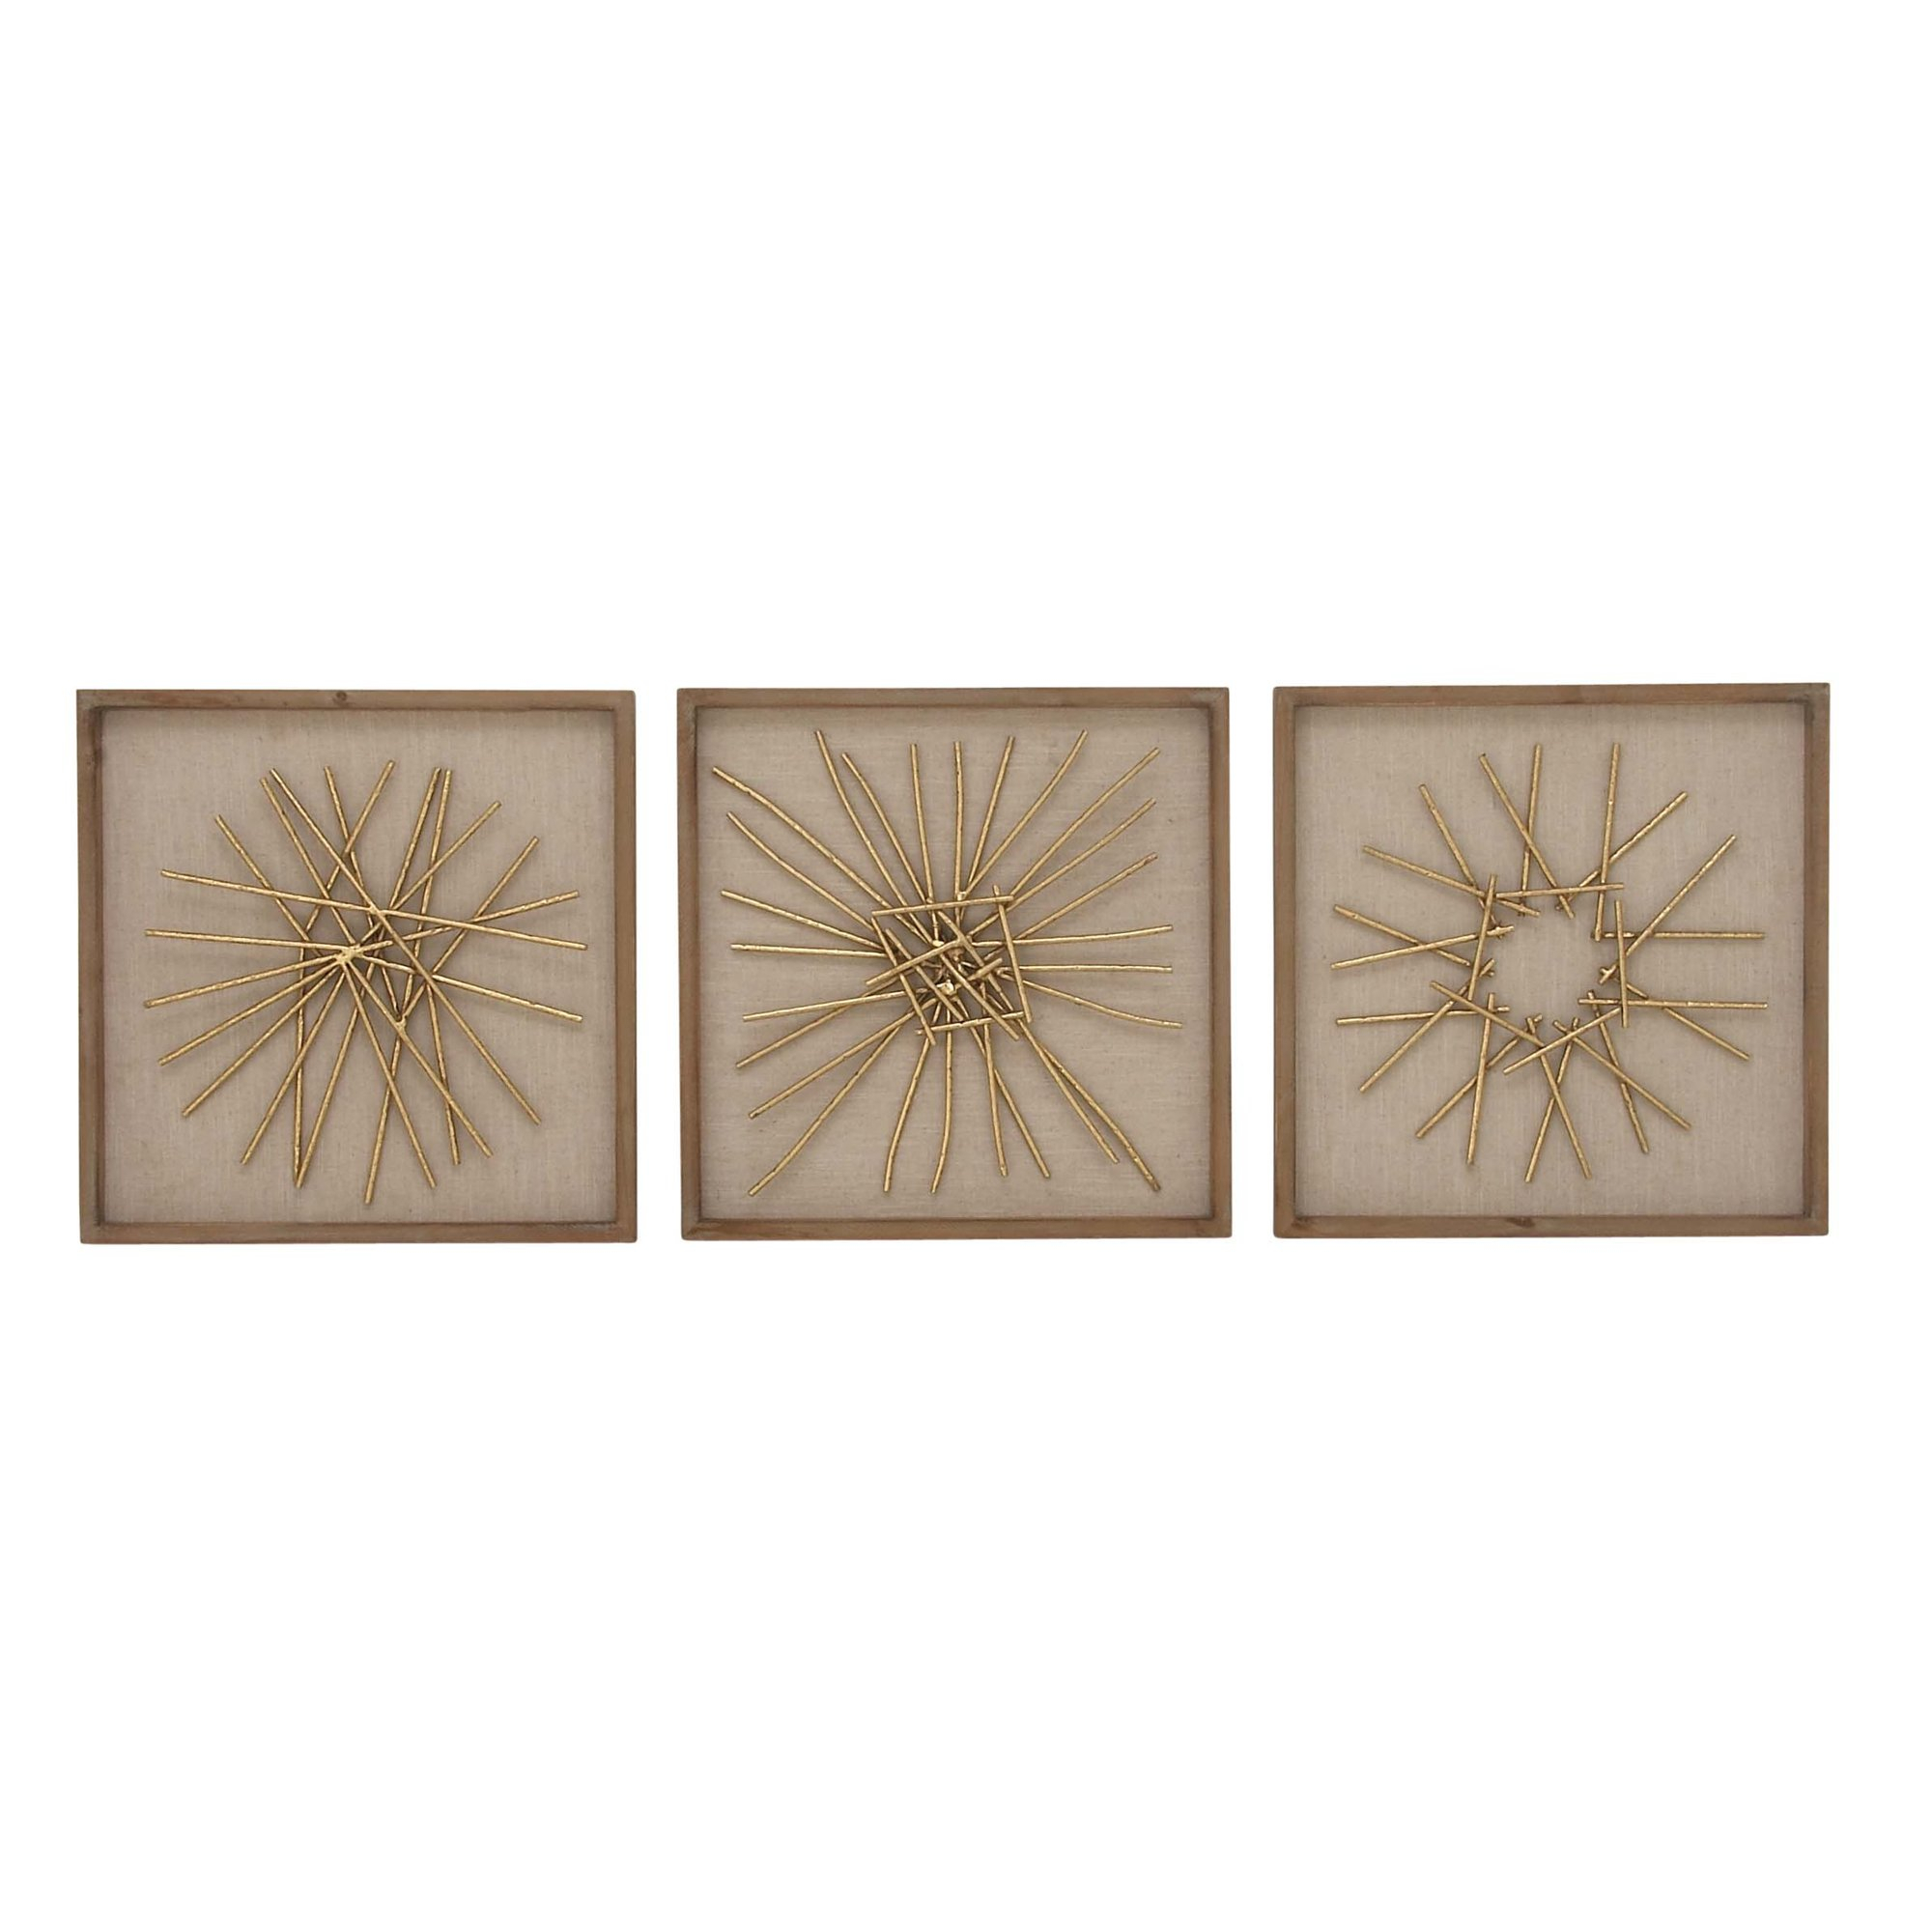 Cole Grey 3 Piece Metalwood Wall Dcor Set Christmas Inside Wall Decor By Cole & Grey (View 5 of 30)